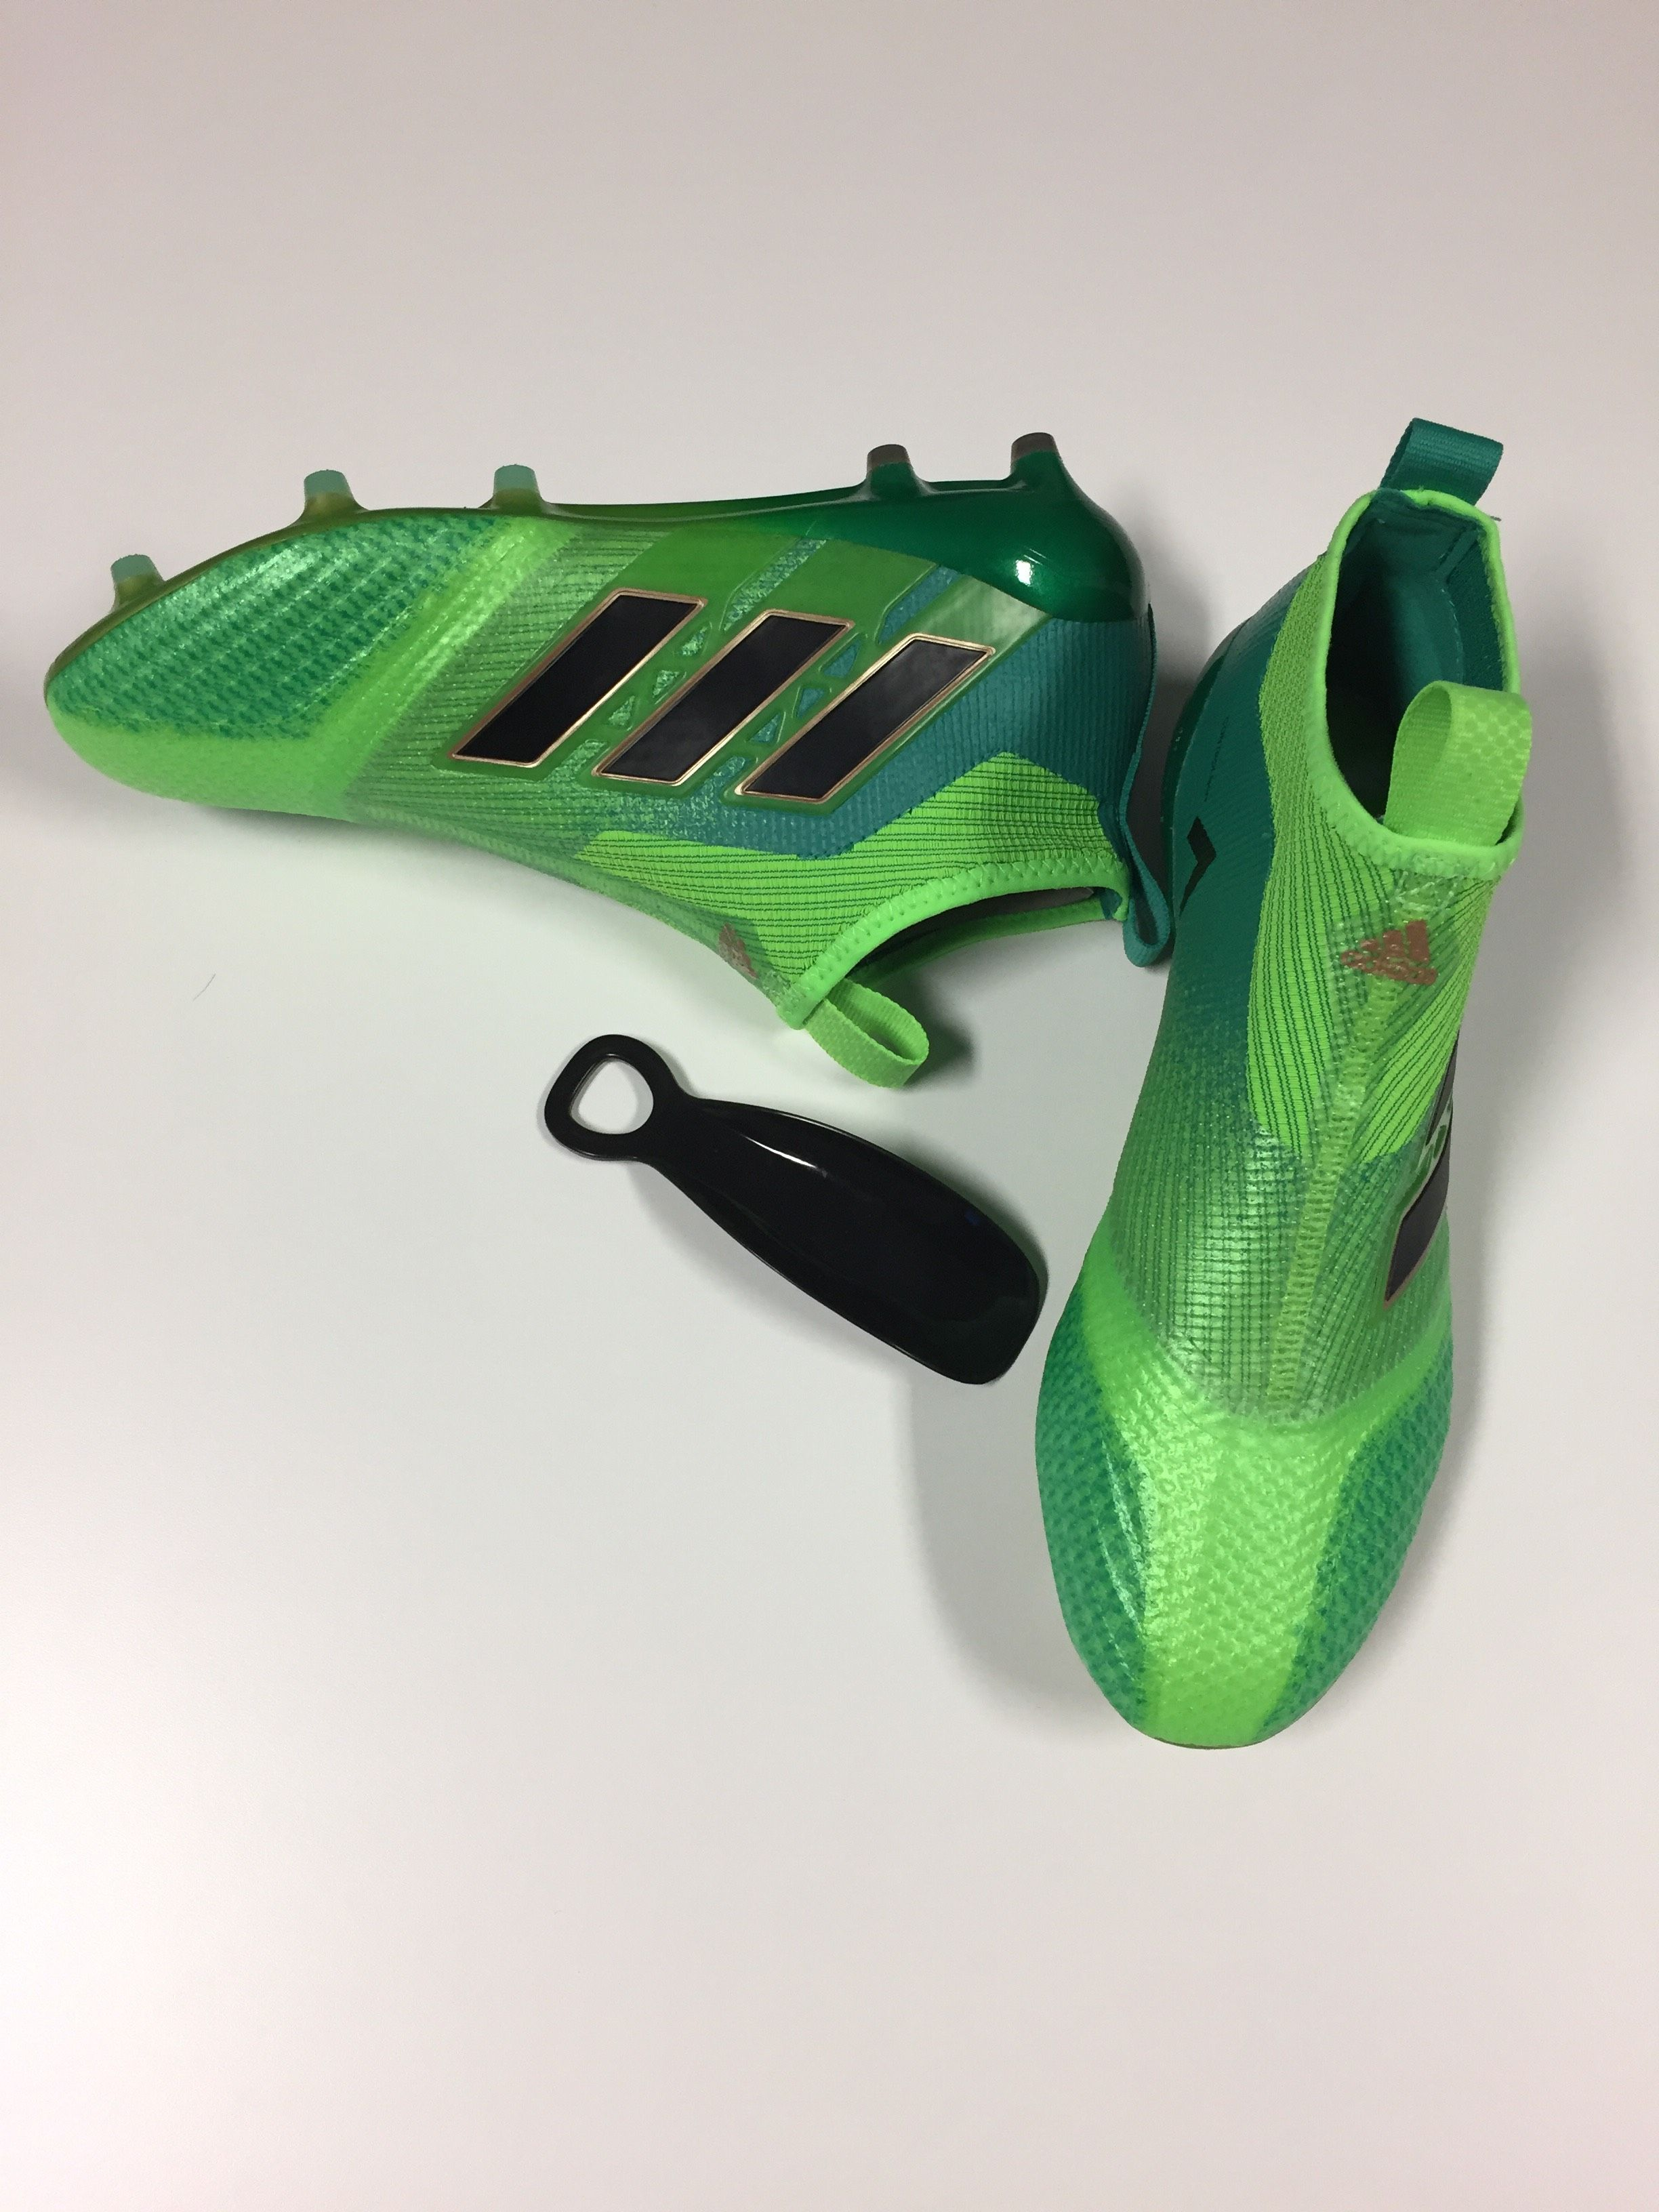 adidas Ace Soccer Cleats - adidas Soccer Shoes - SoccerPro.com